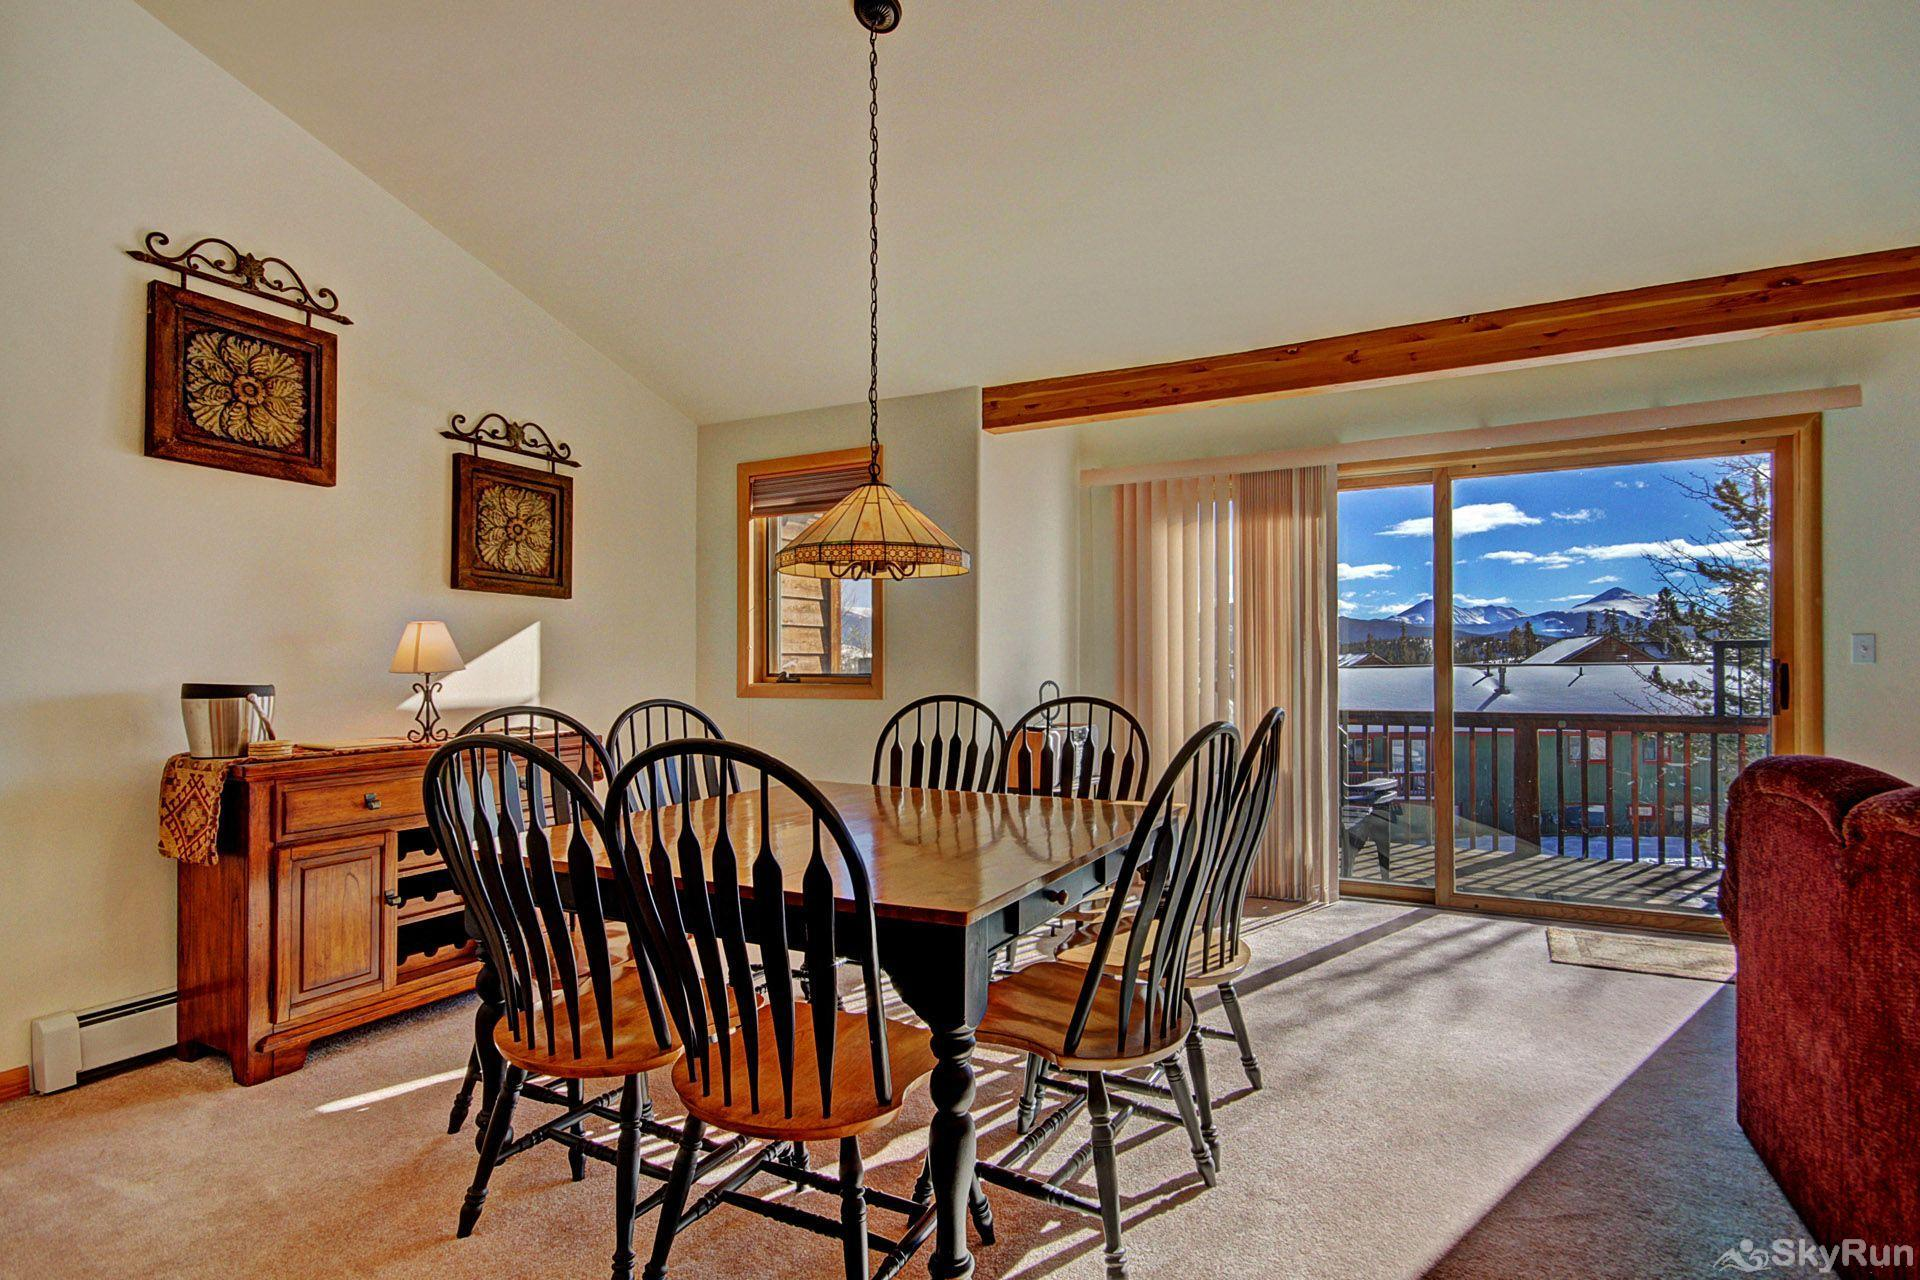 Sauterne Sanctuary 3BR 3BA Dining area with beautiful views